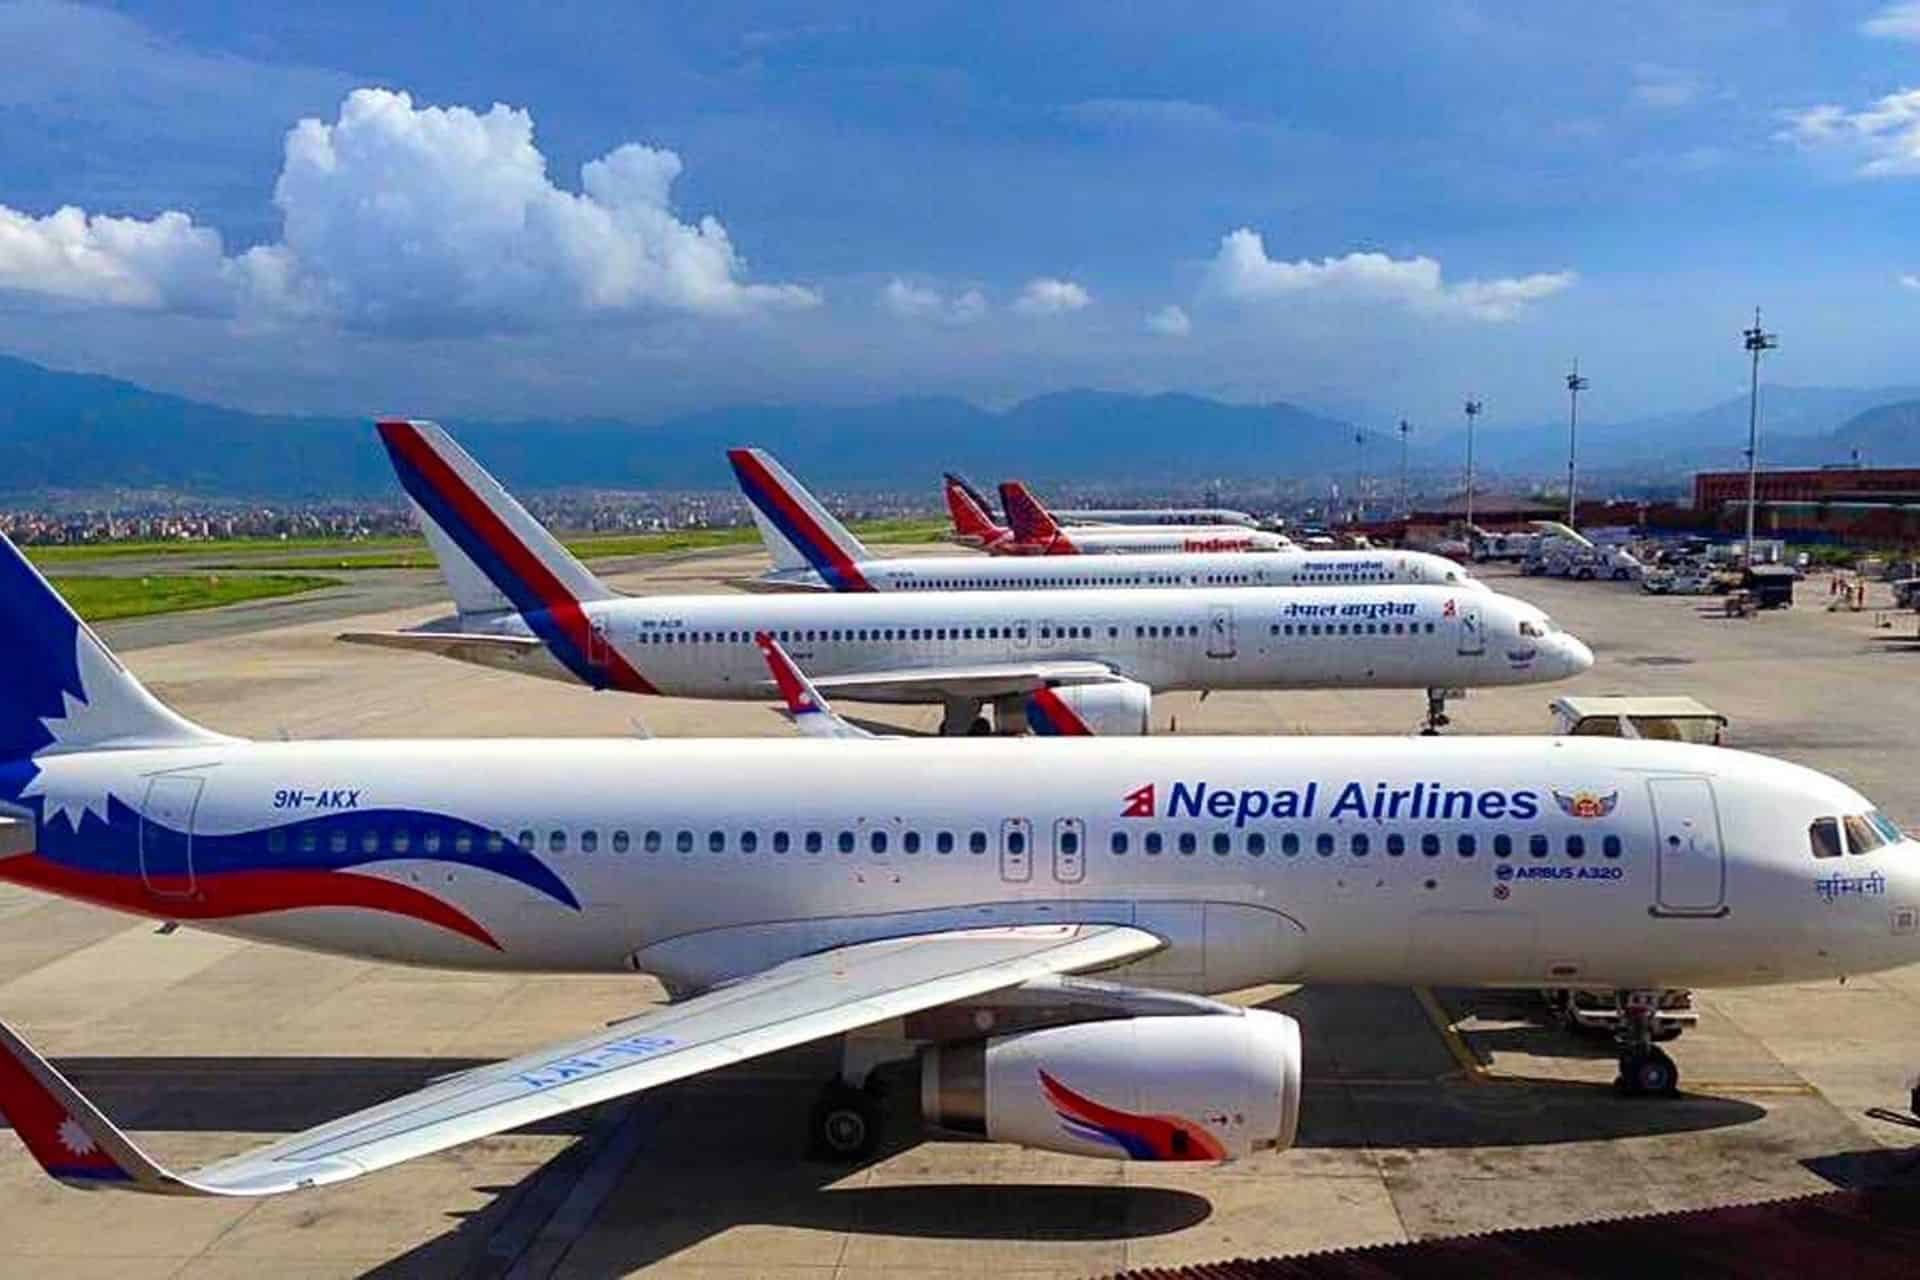 Nepal Airlines planes